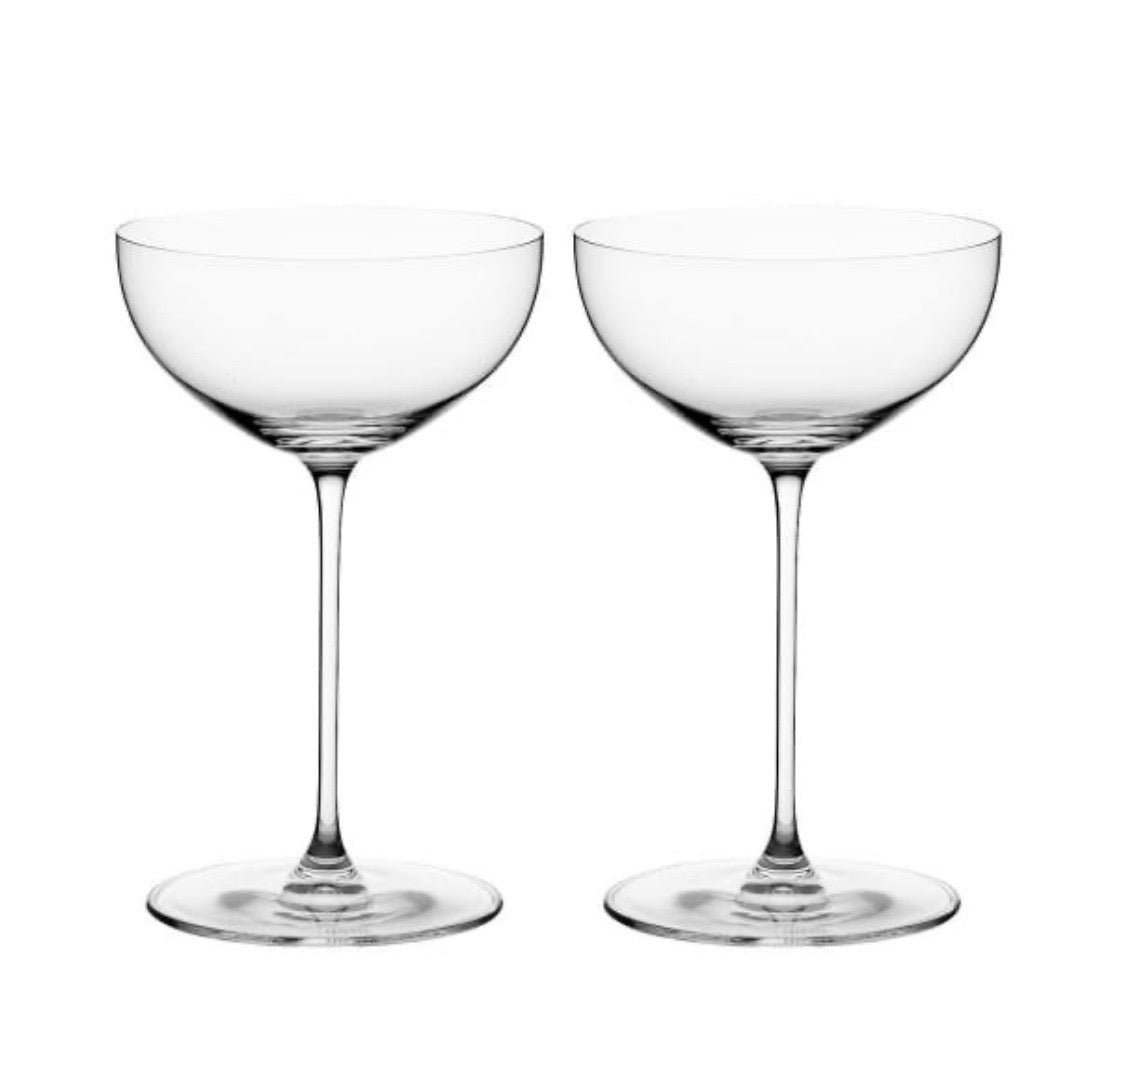 Riedel Veritas Champagne Coupe - Set of 2